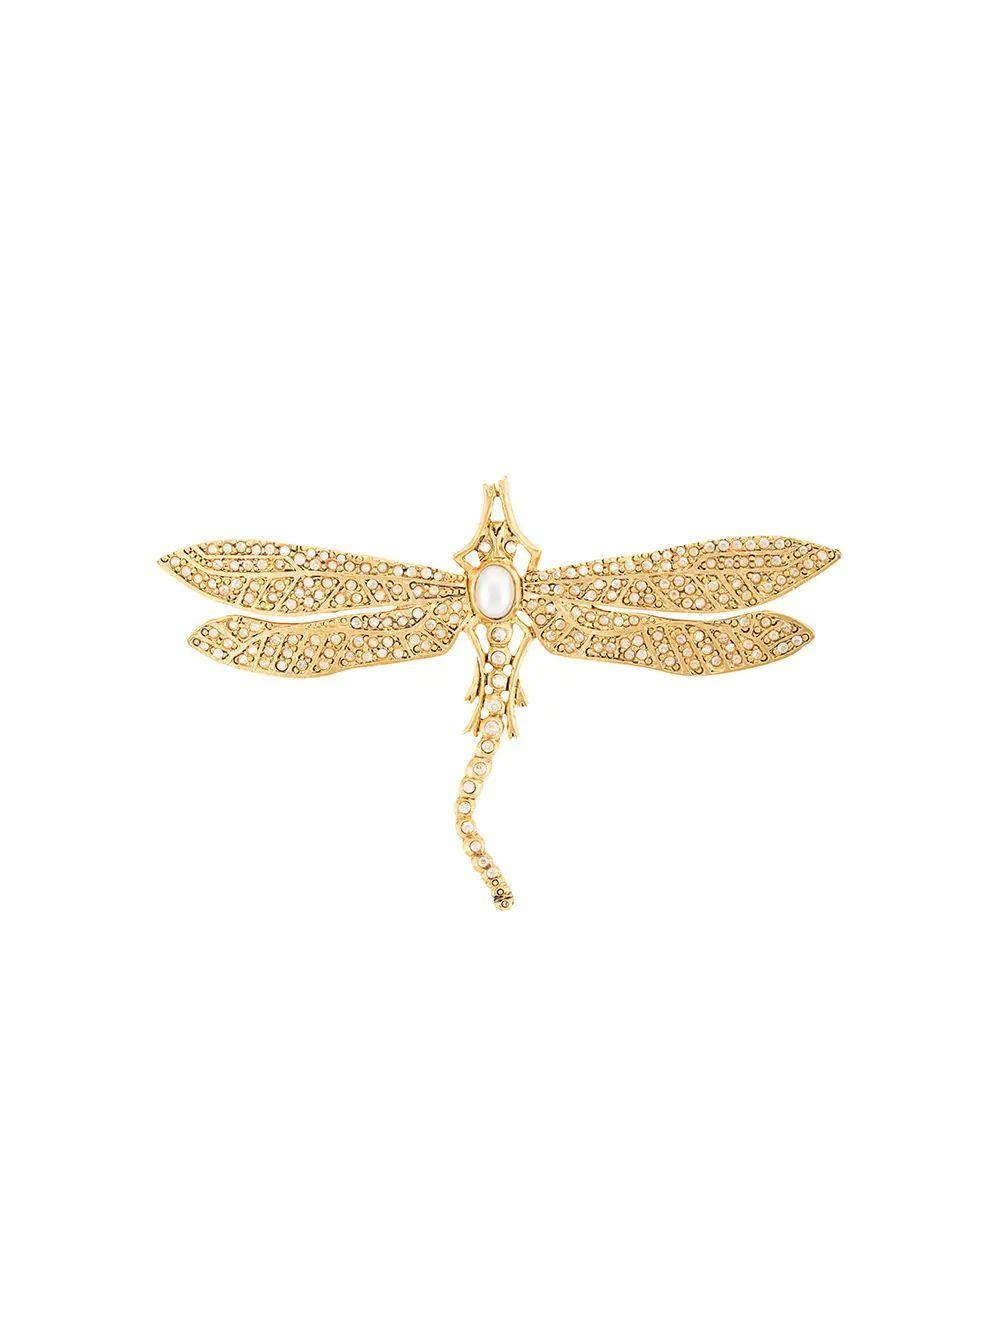 Pave Pearl Dragonfly Brooch Item # S20J301